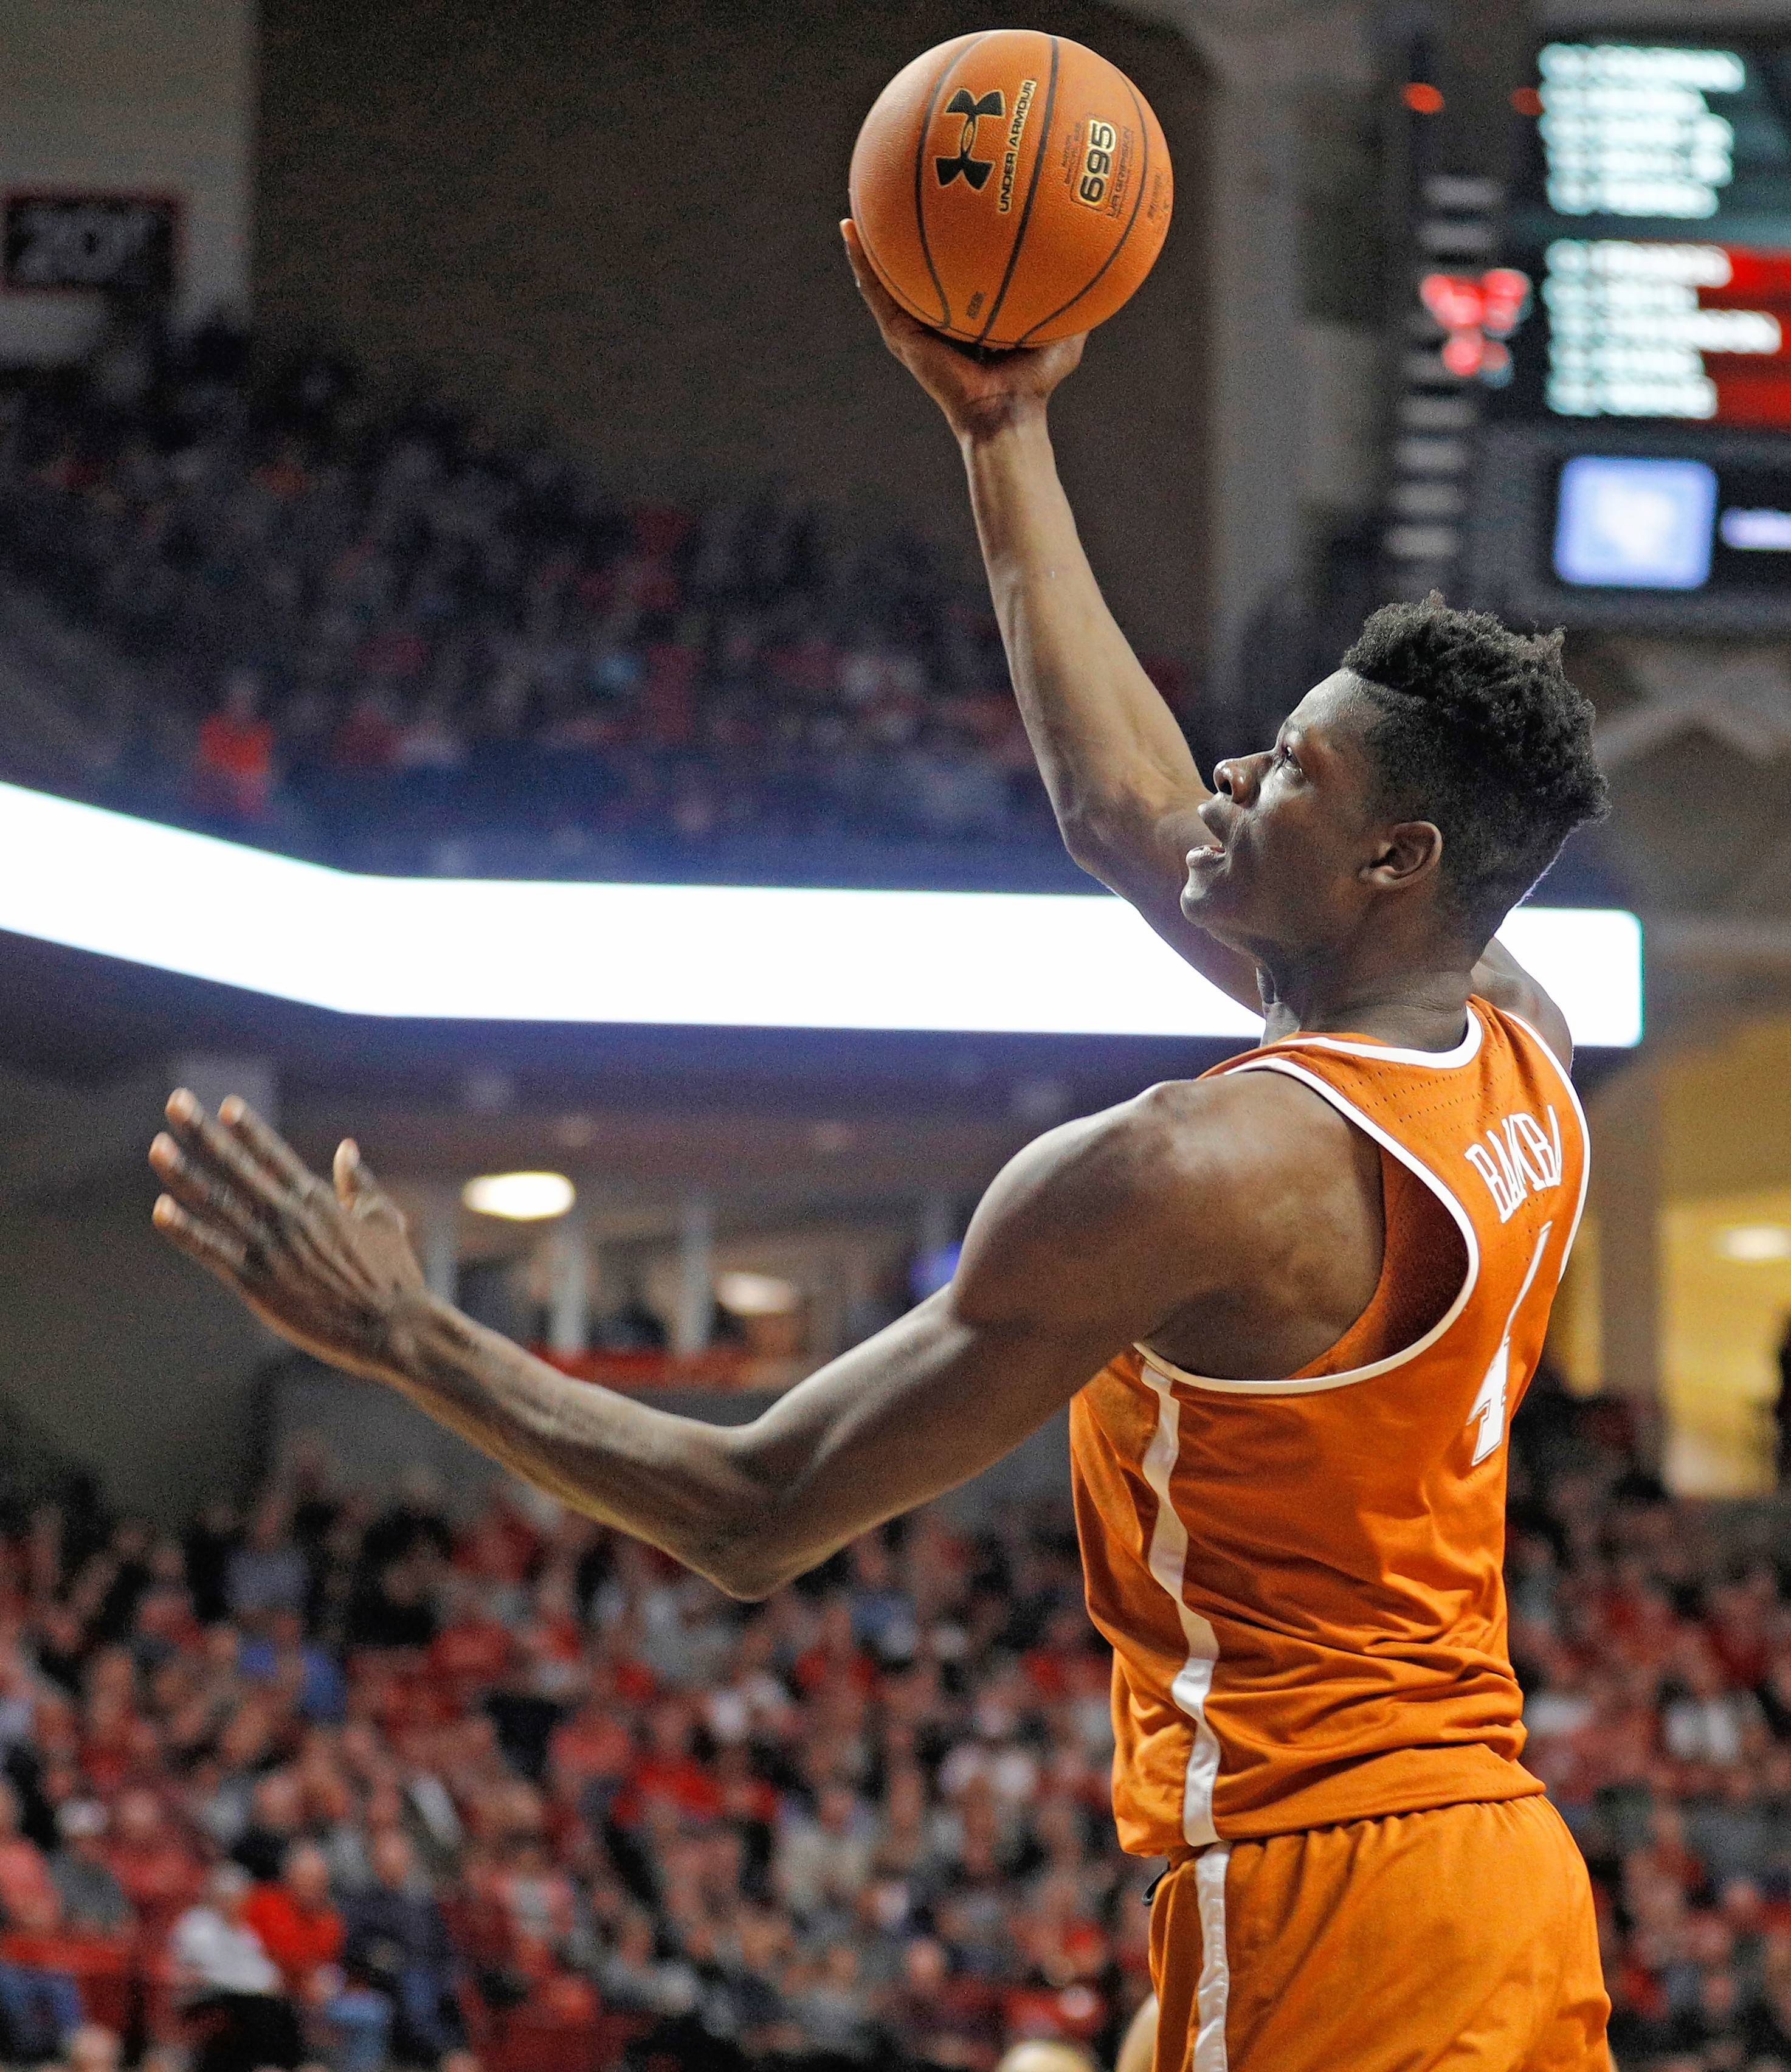 Former Texas center Mo Bamba,a  a 7-footer with a 7-foot-10 wingspan, aftered 12.9 points and 10.5 rebounds in his lone college season.